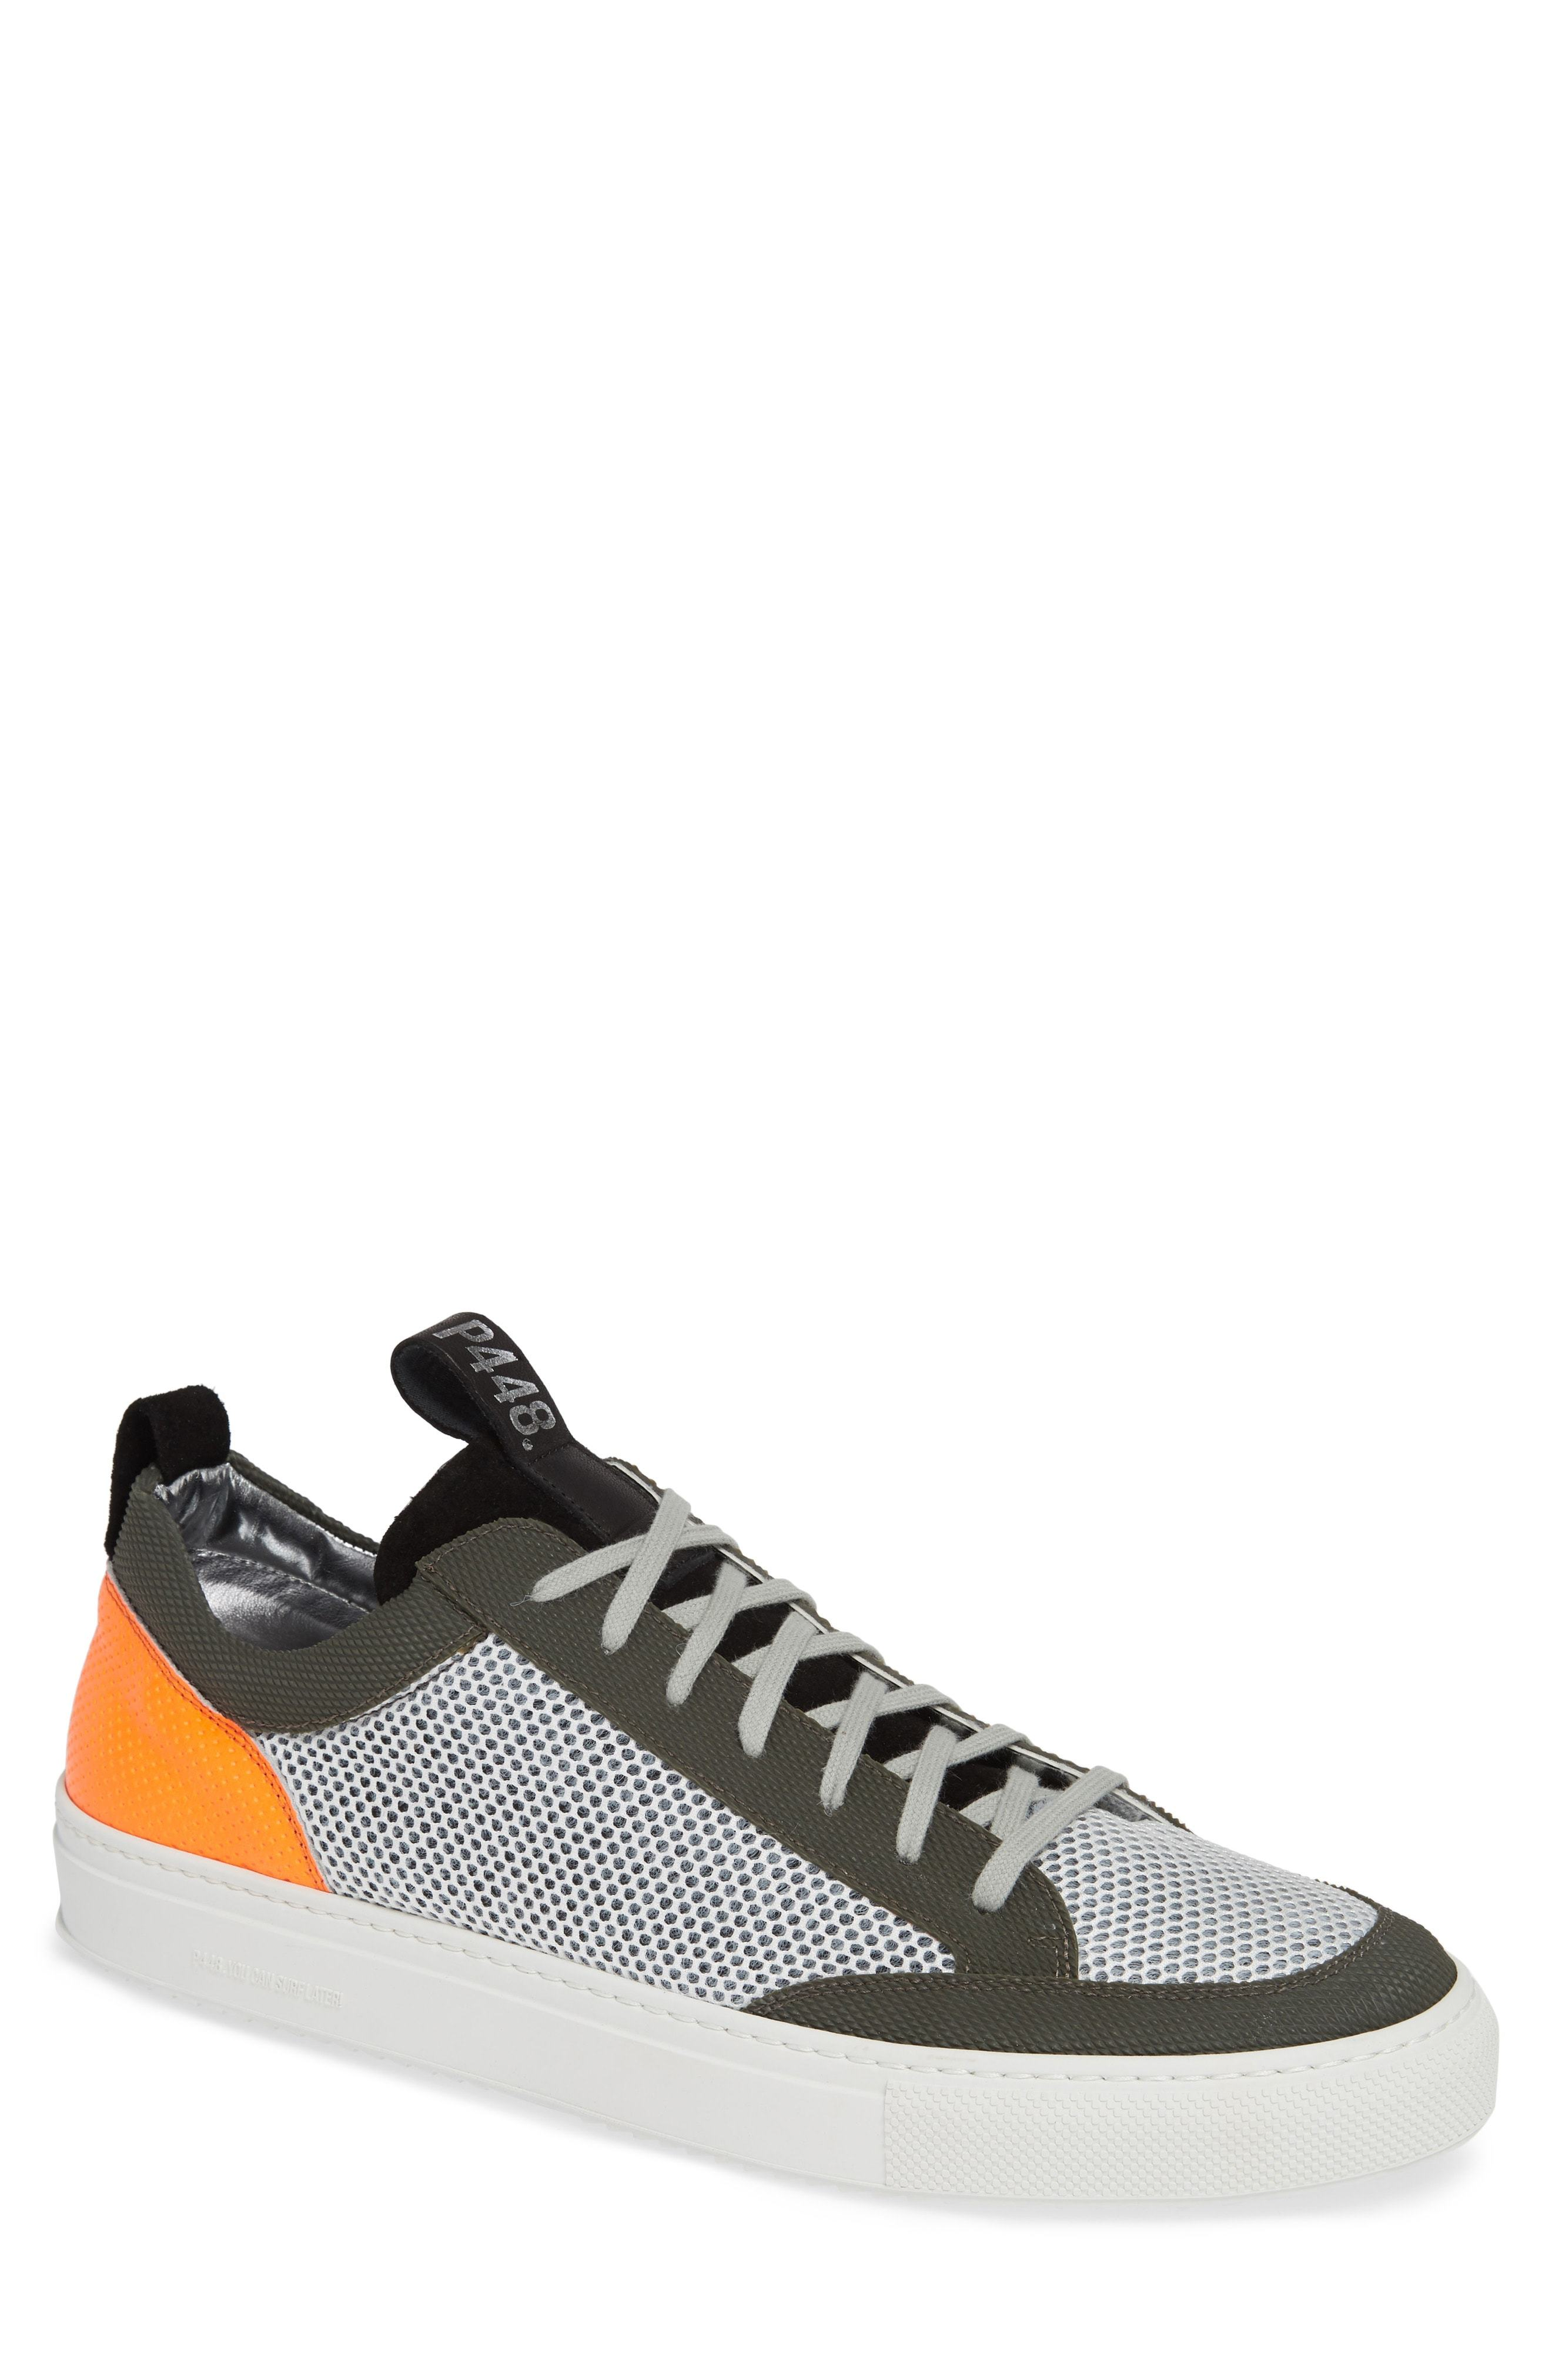 e4f88867529 ... Low Top Sneakers P448 A8soho Textured Sneaker